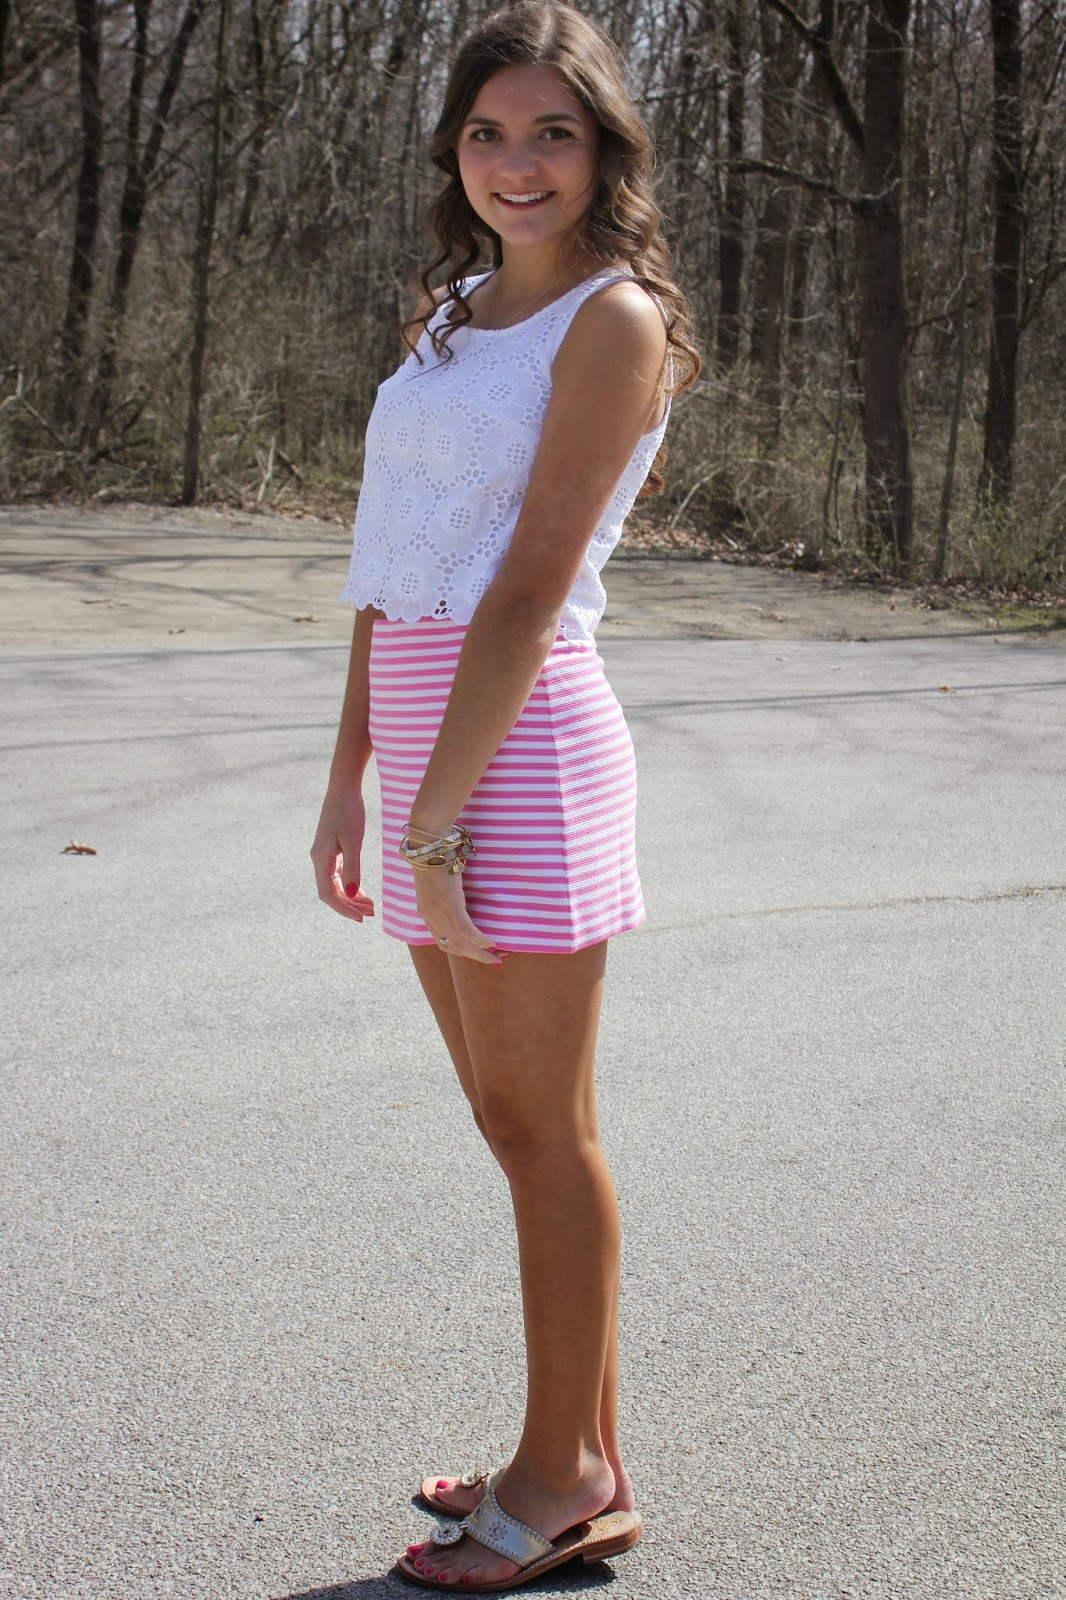 Lilly Pulitzer Tate Striped Skirt and Lux Lace Crop Top by Anchors and Pearls